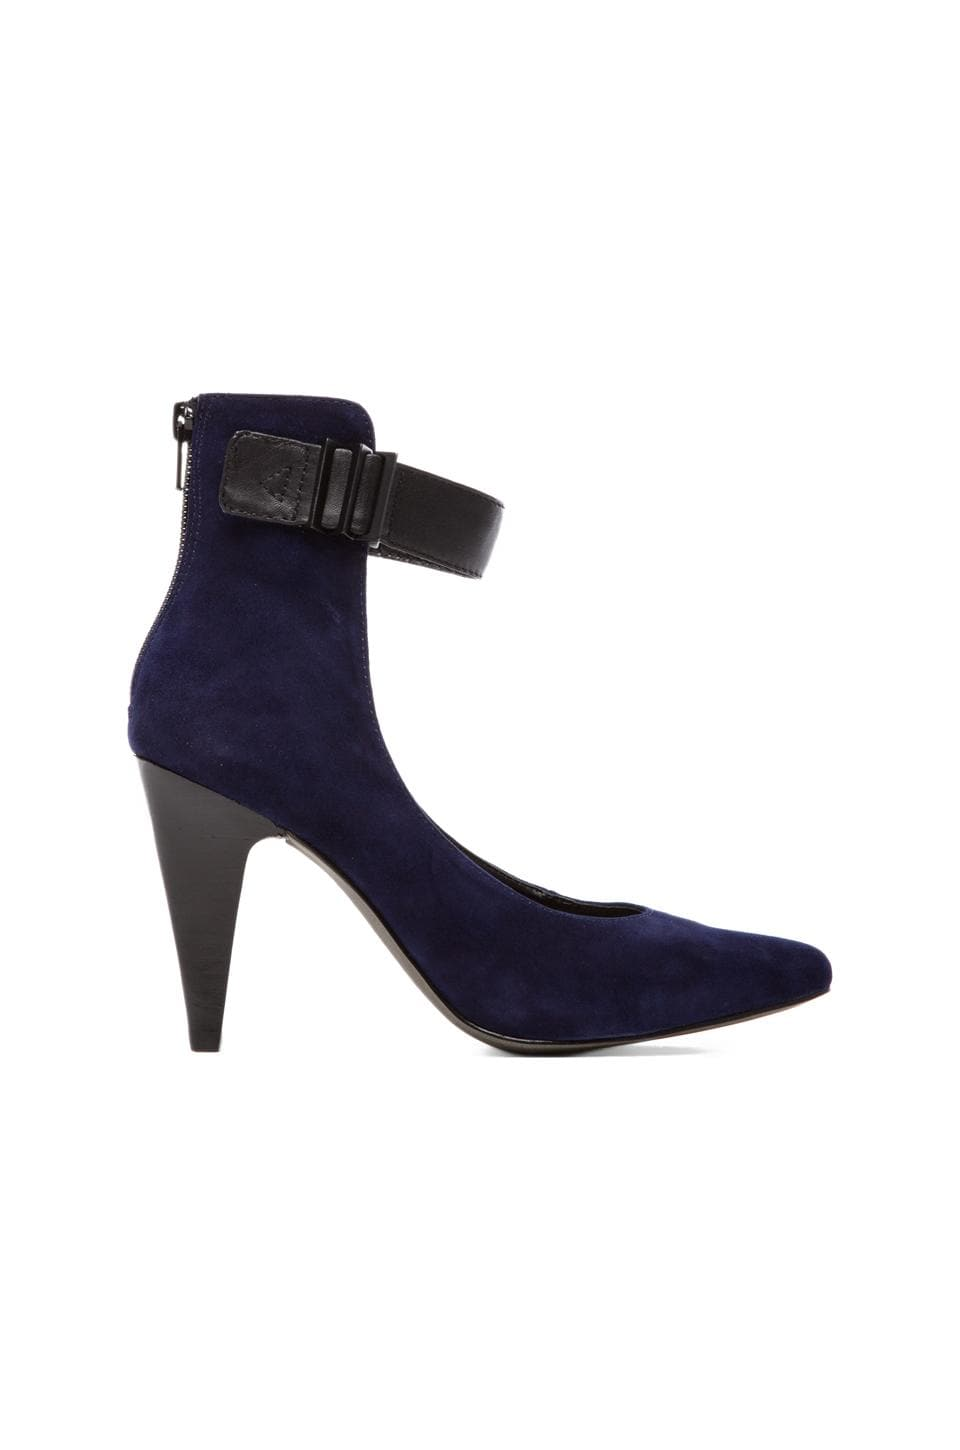 Kelsi Dagger Lareena Heel in Black/Ocean Blue